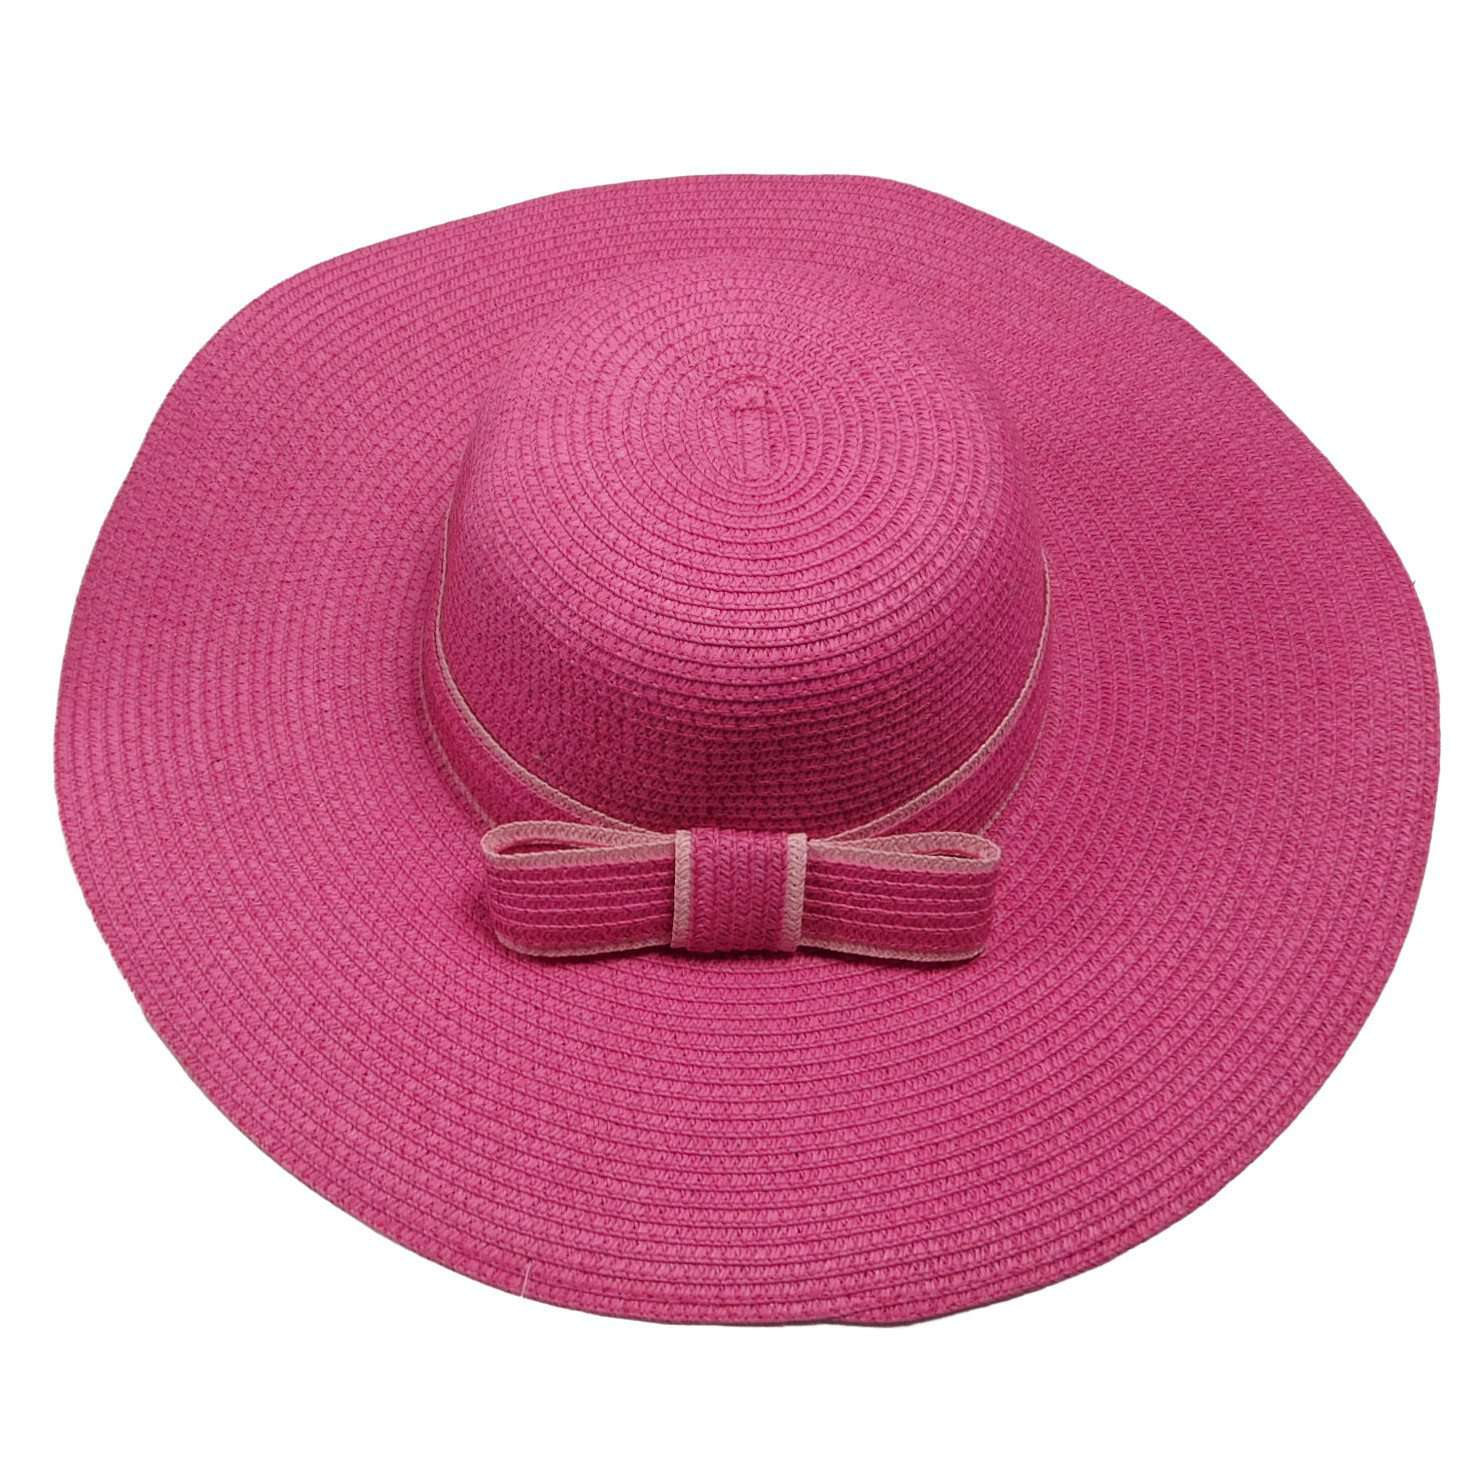 Sun Hat with Bow Detail - SetarTrading Hats